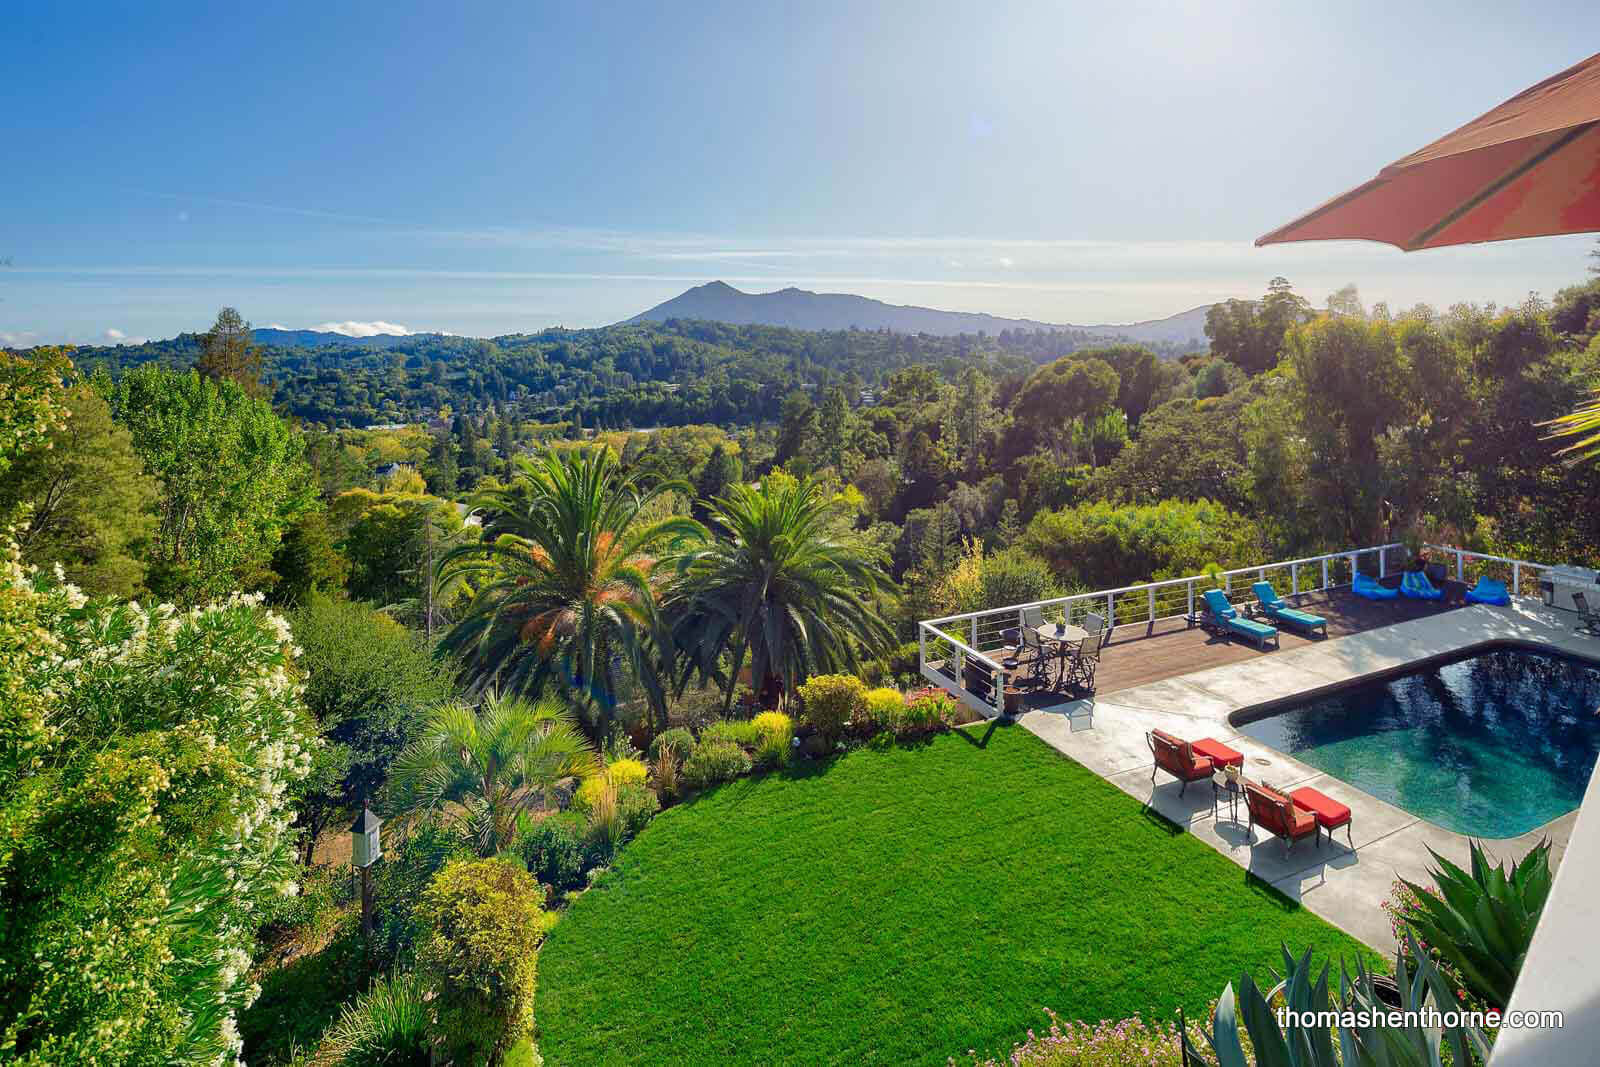 Swimming pool, lawn and view of Mt. Tamalpais in distance at 272 Fairhills Drive San Rafael